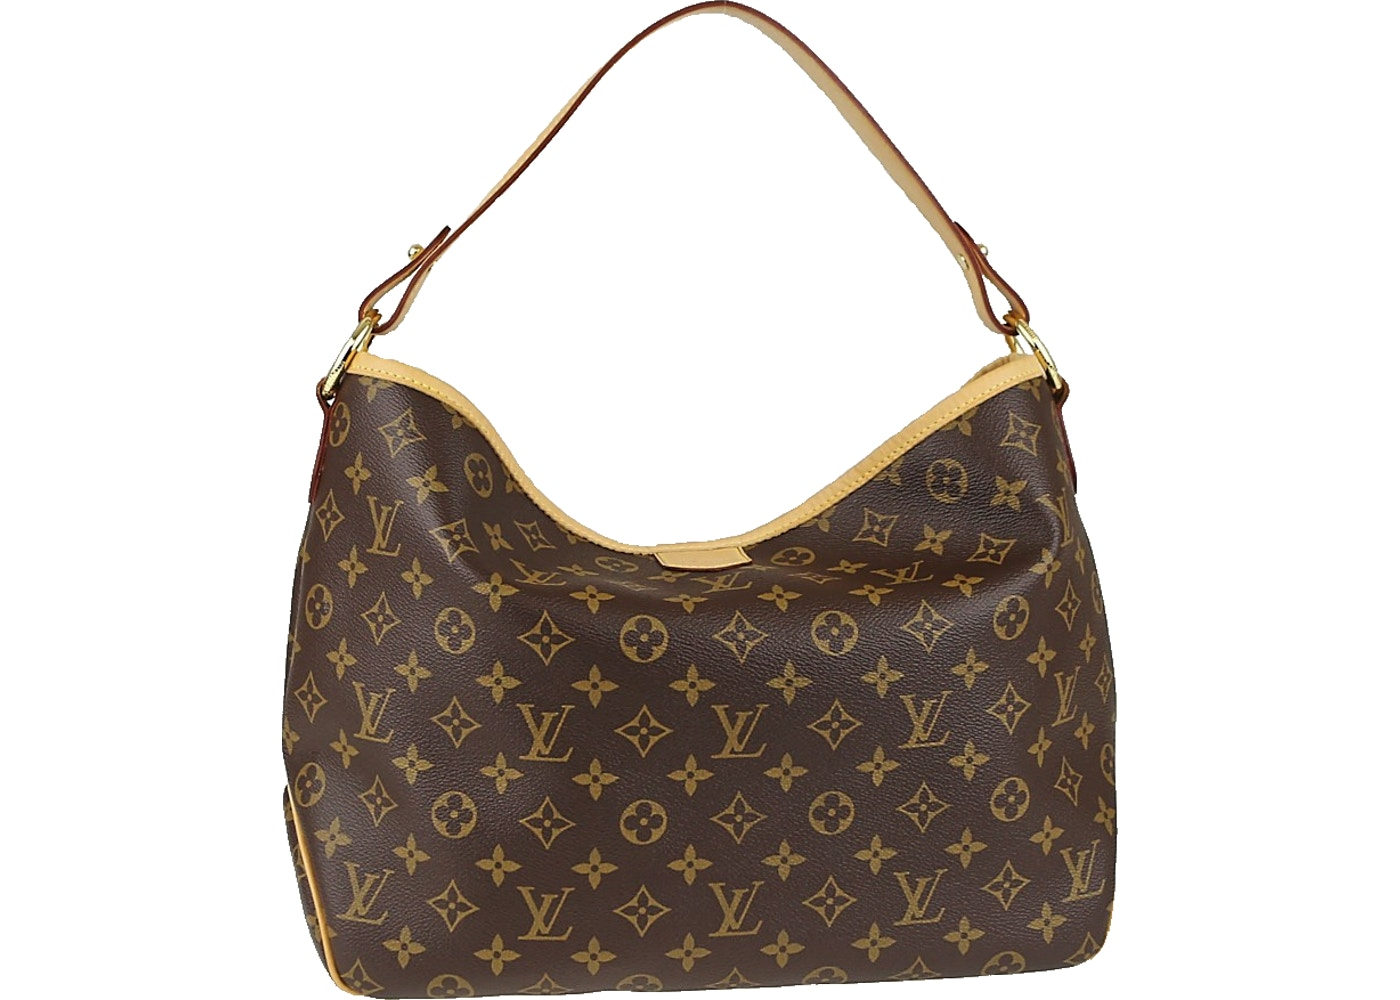 af8874b7d8d9 Louis Vuitton Delightful Monogram PM Brown. Monogram PM Brown